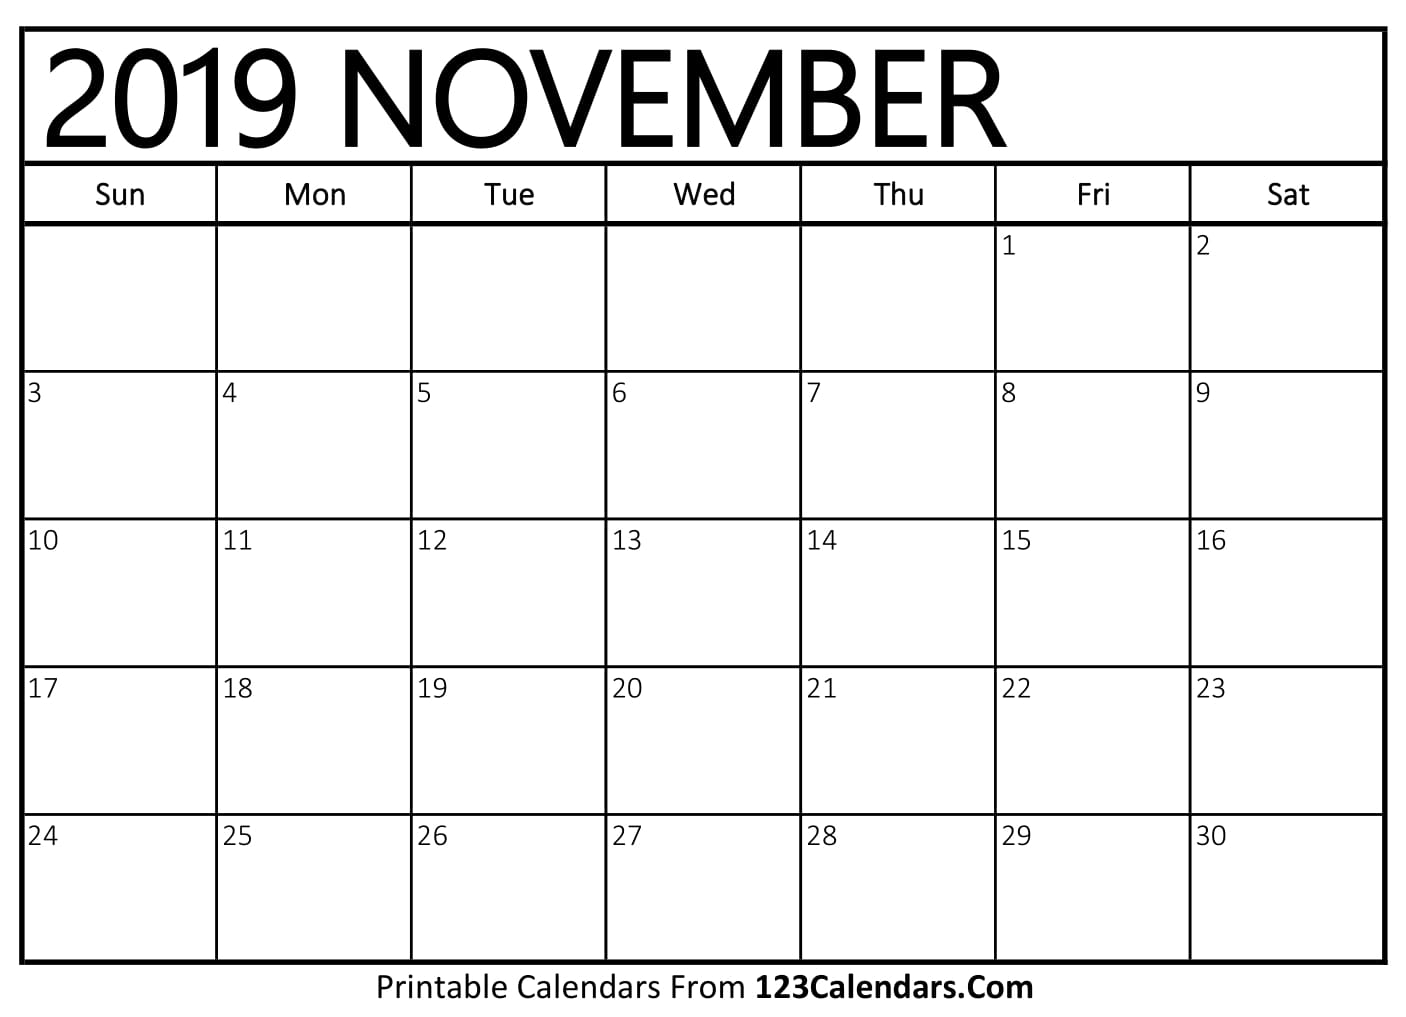 photo relating to November and December Calendar Printable called November 2019 Printable Calendar